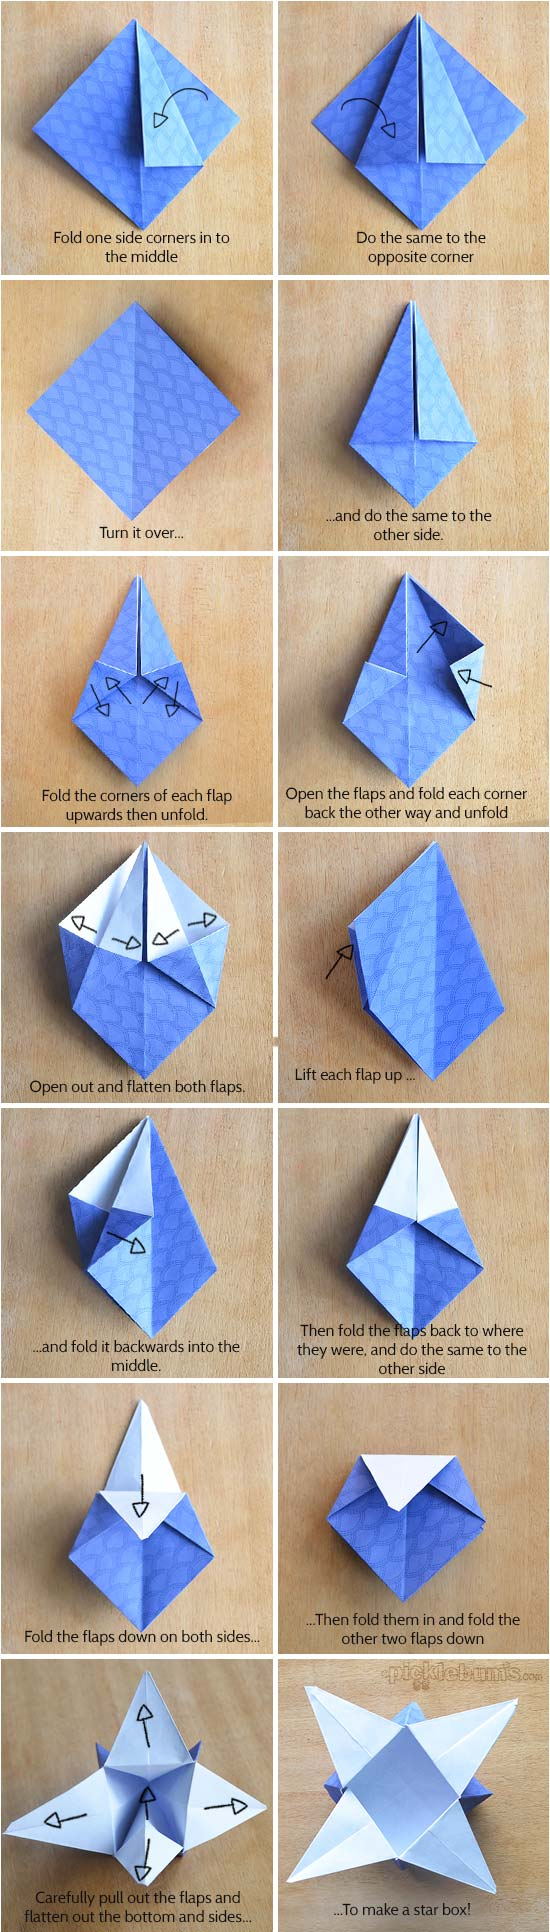 Step instructions how to make origami a heart box Vector Image | 1932x550